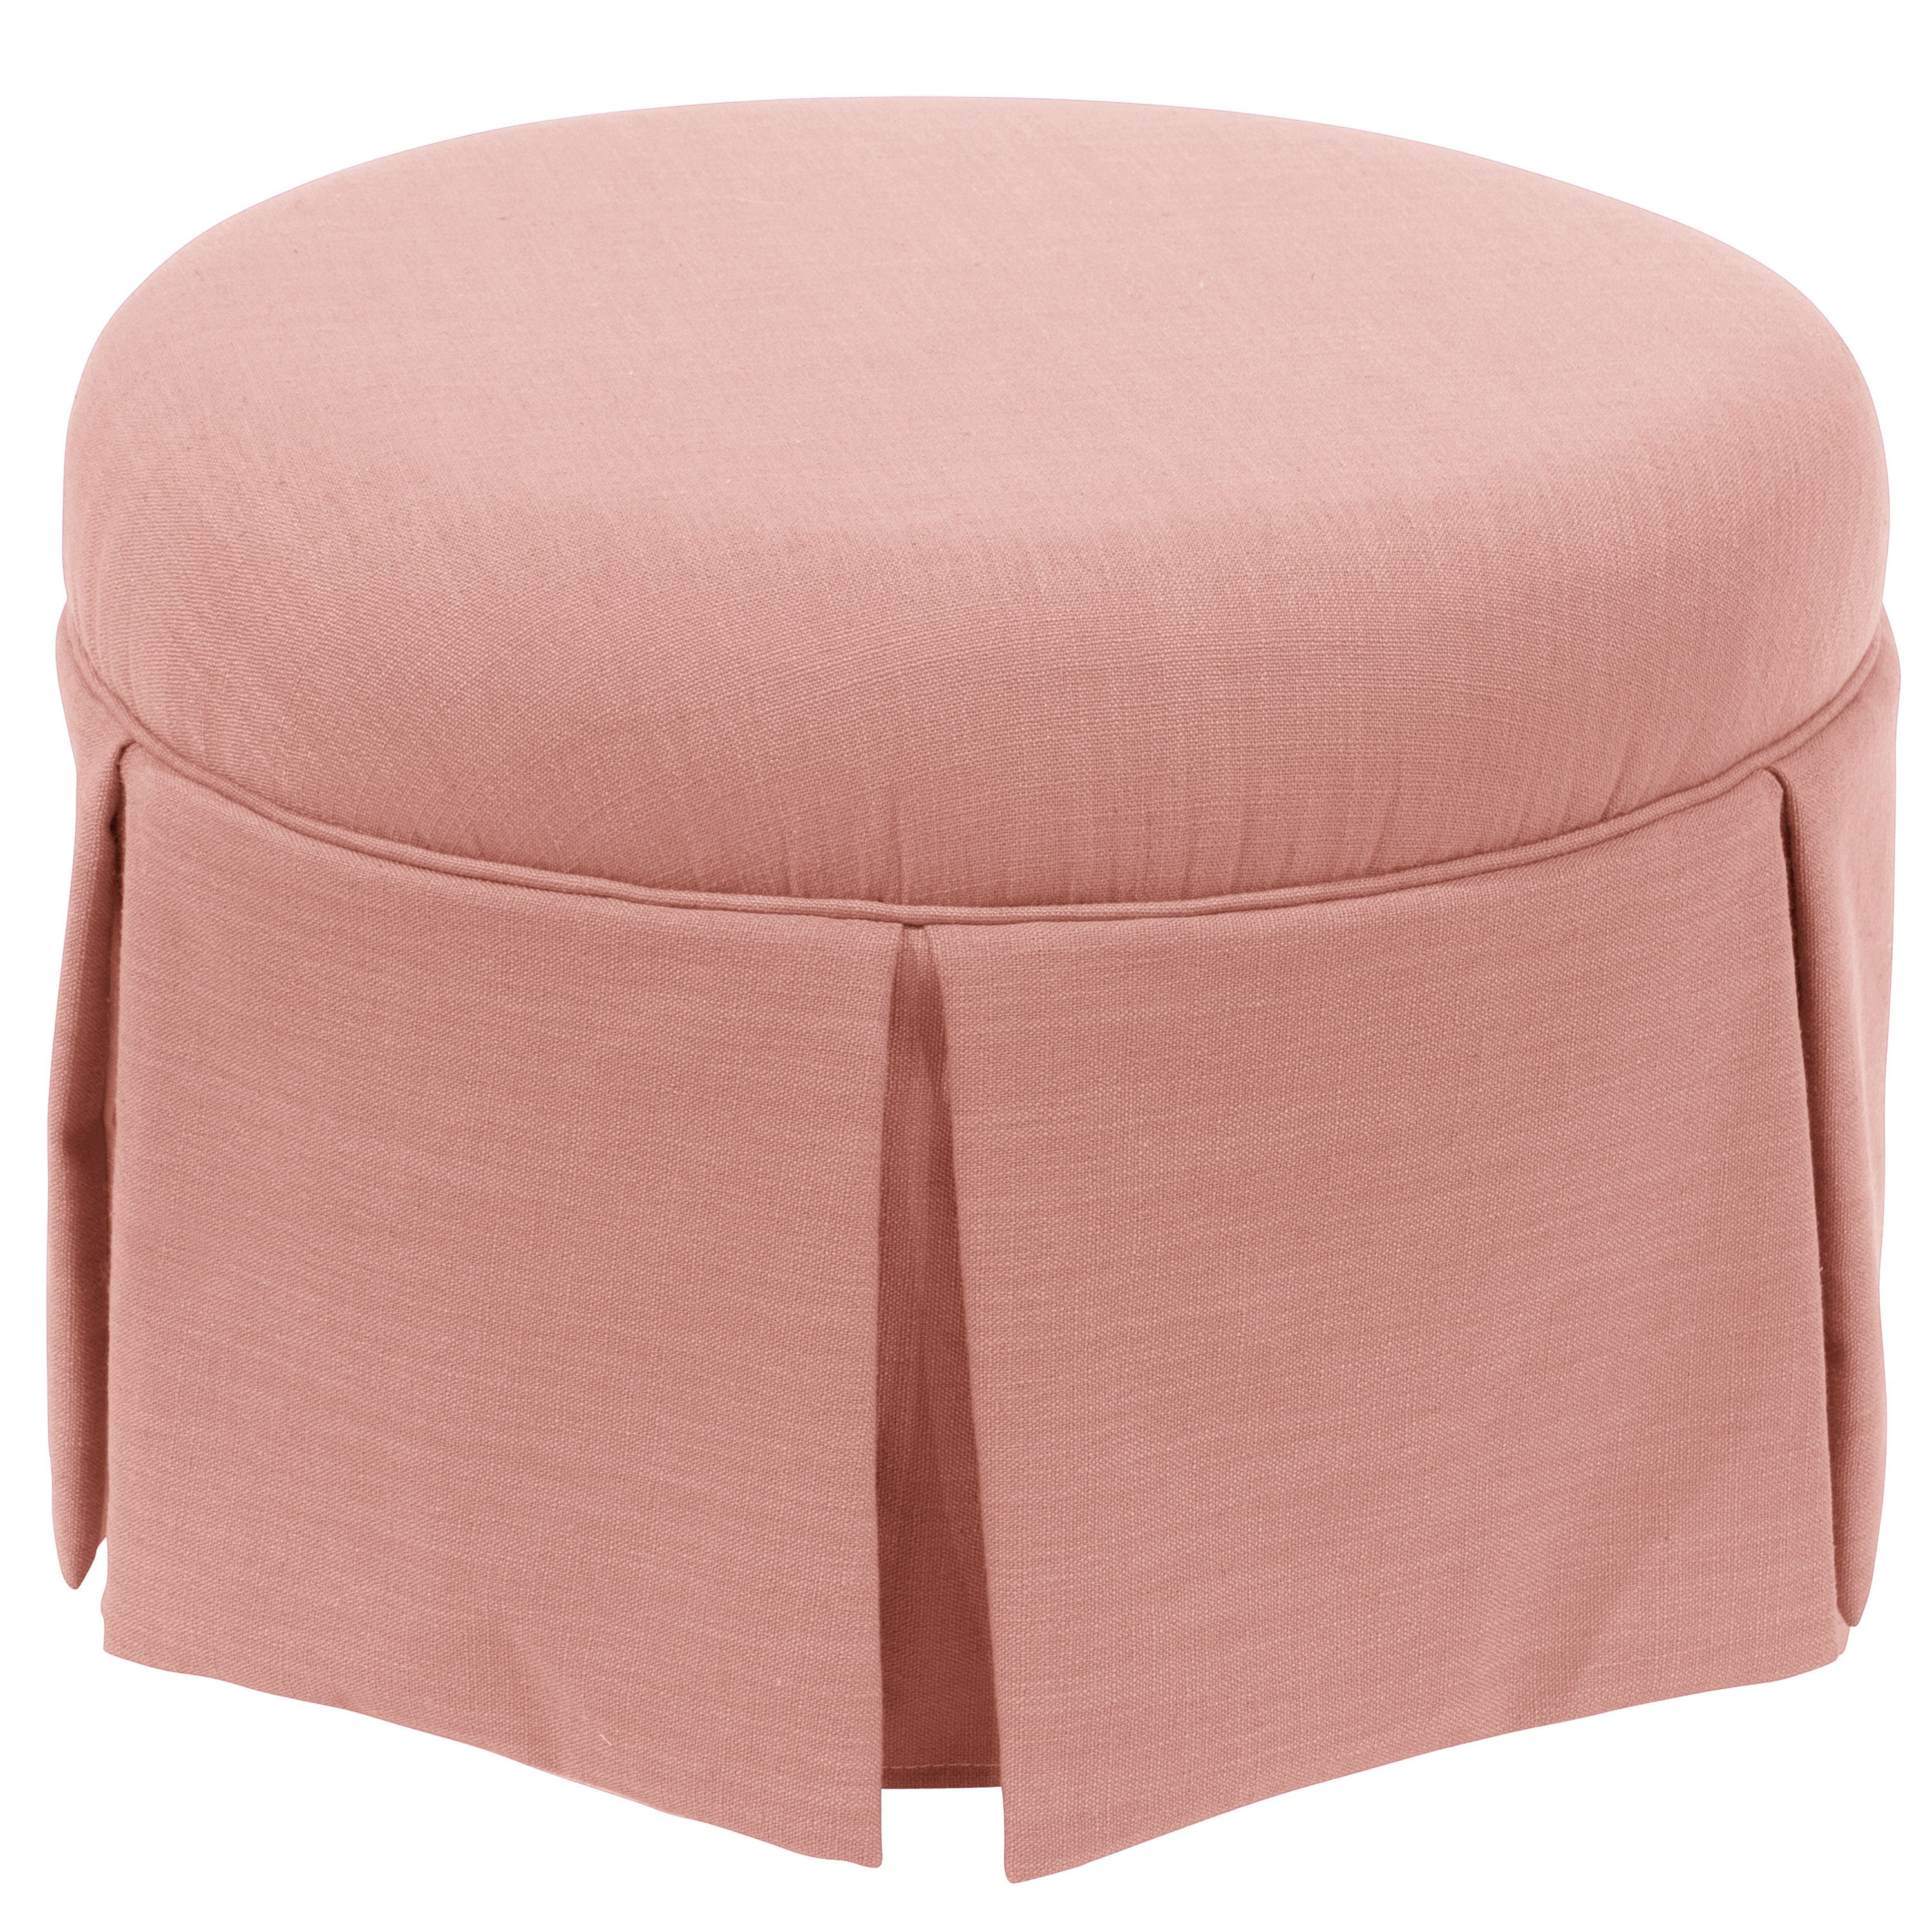 Enjoyable Details About Skyline Furniture Skyline Linen Petal Round Skirted Ottoman Pink Medium Squirreltailoven Fun Painted Chair Ideas Images Squirreltailovenorg